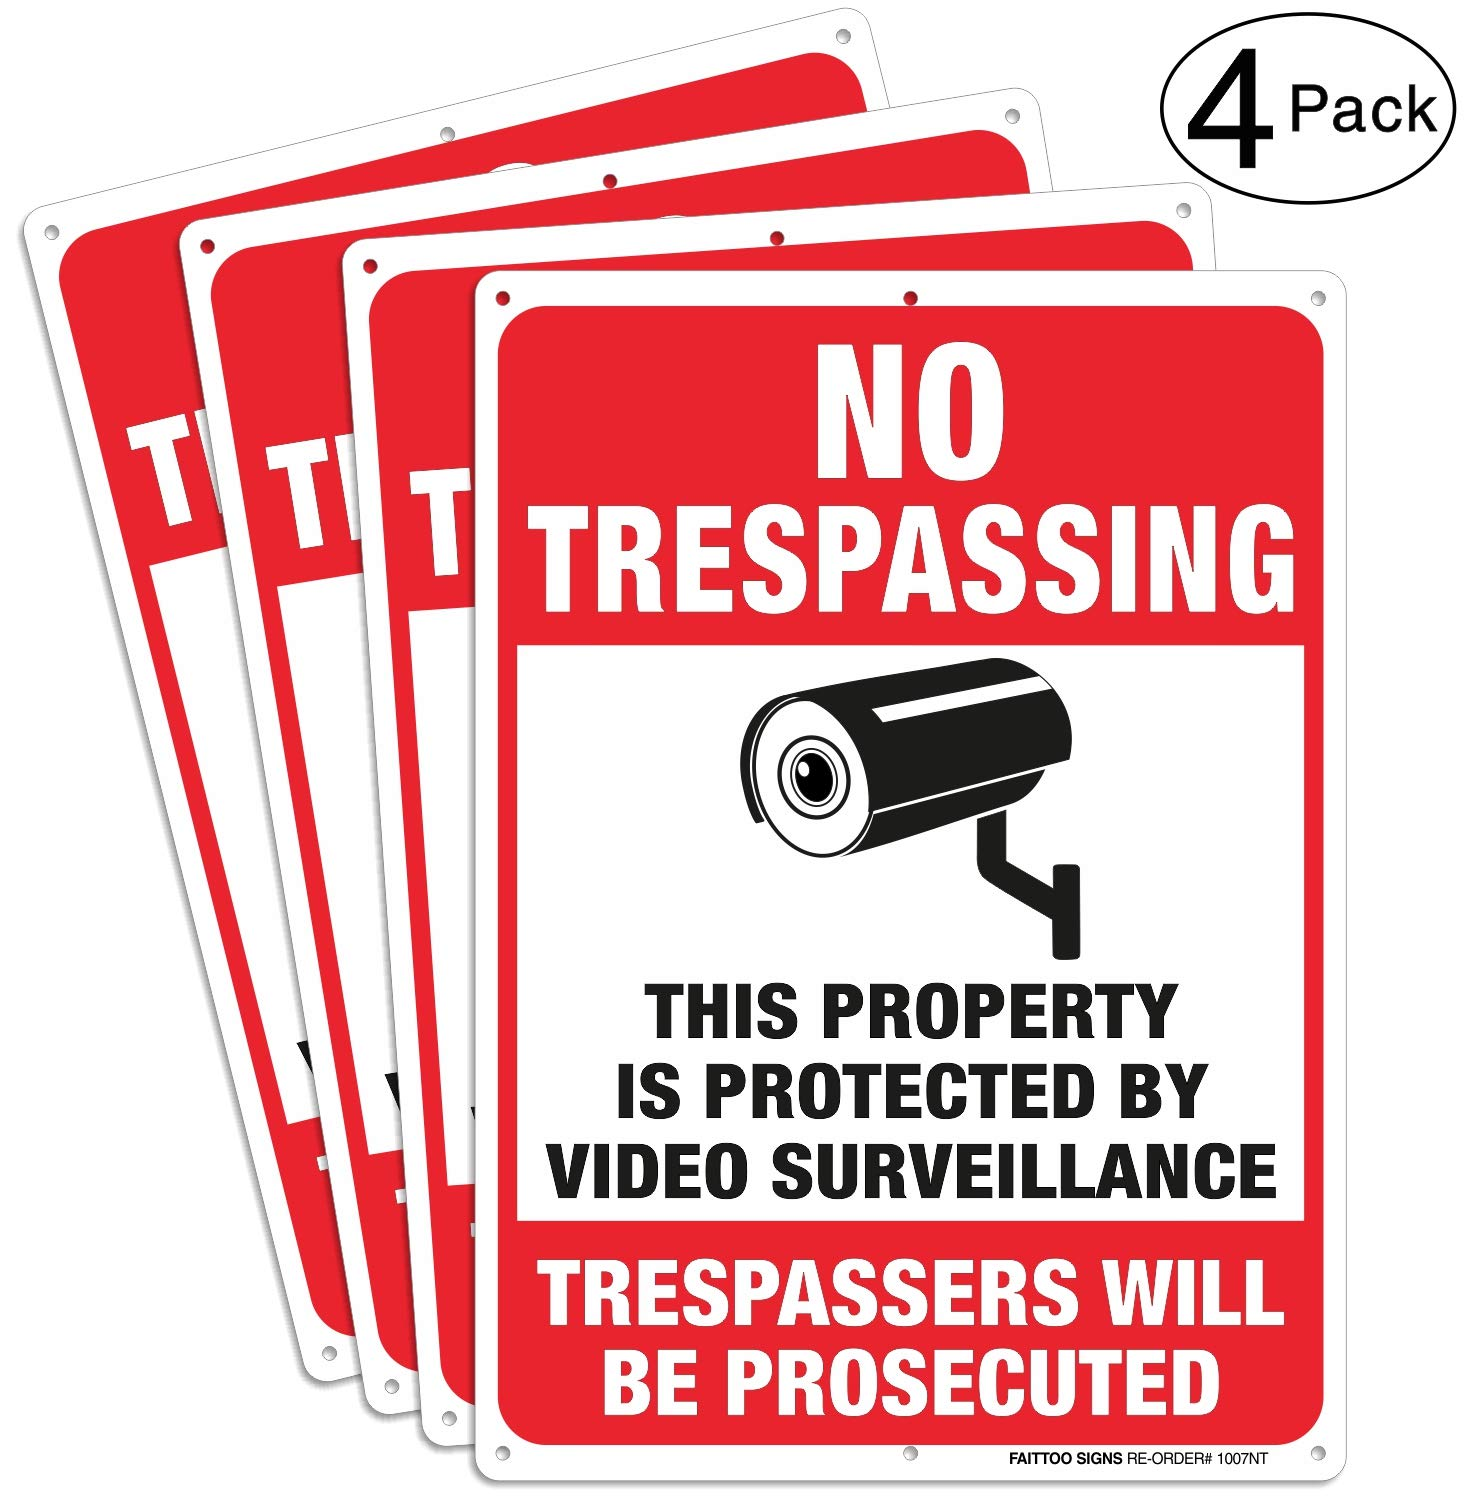 (4 Pack) Video Surveillance Signs, No Trespassing Violators Will Be Prosecuted Metal Reflective Warning Sign, 10 x 7 Inches0.40 Aluminum Indoor Or Outdoor Use for Home Business CCTV Security Camera 71P9cfZqKNL